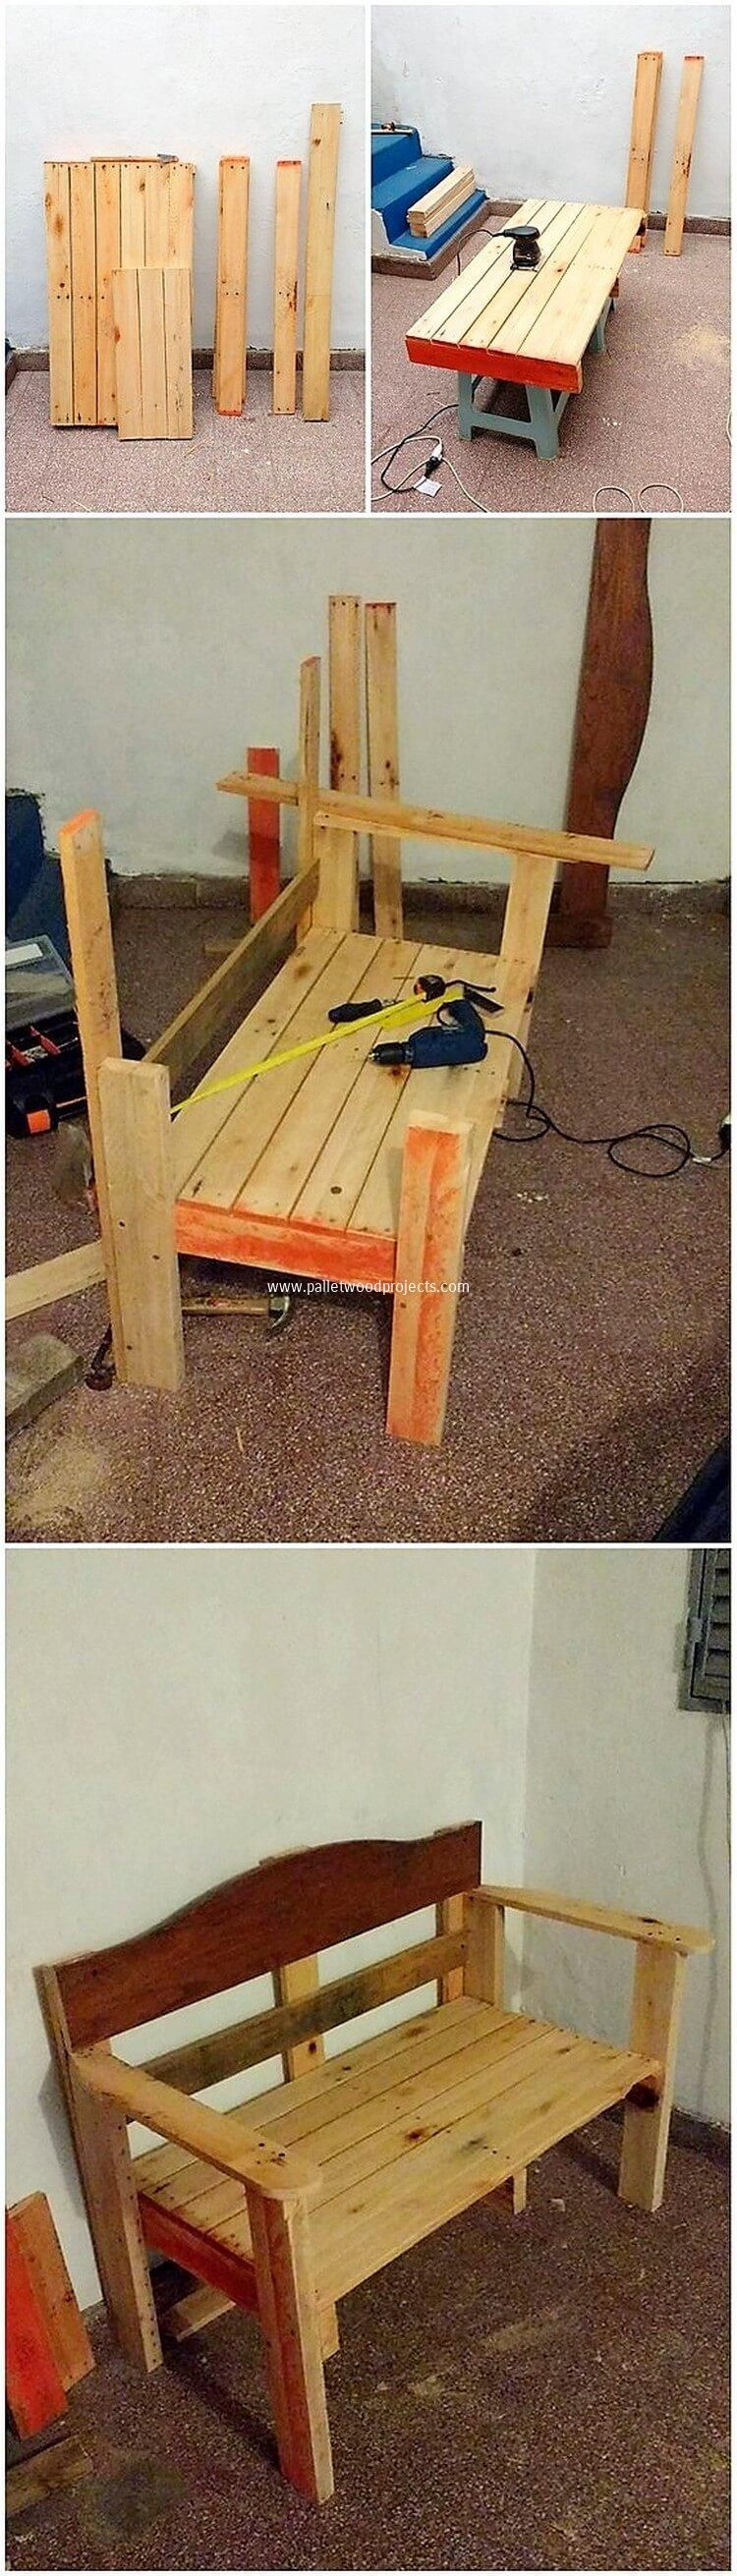 diy pallet bench wood pallet outdoor furniture diy on extraordinary ideas for old used dumped pallets wood id=65609